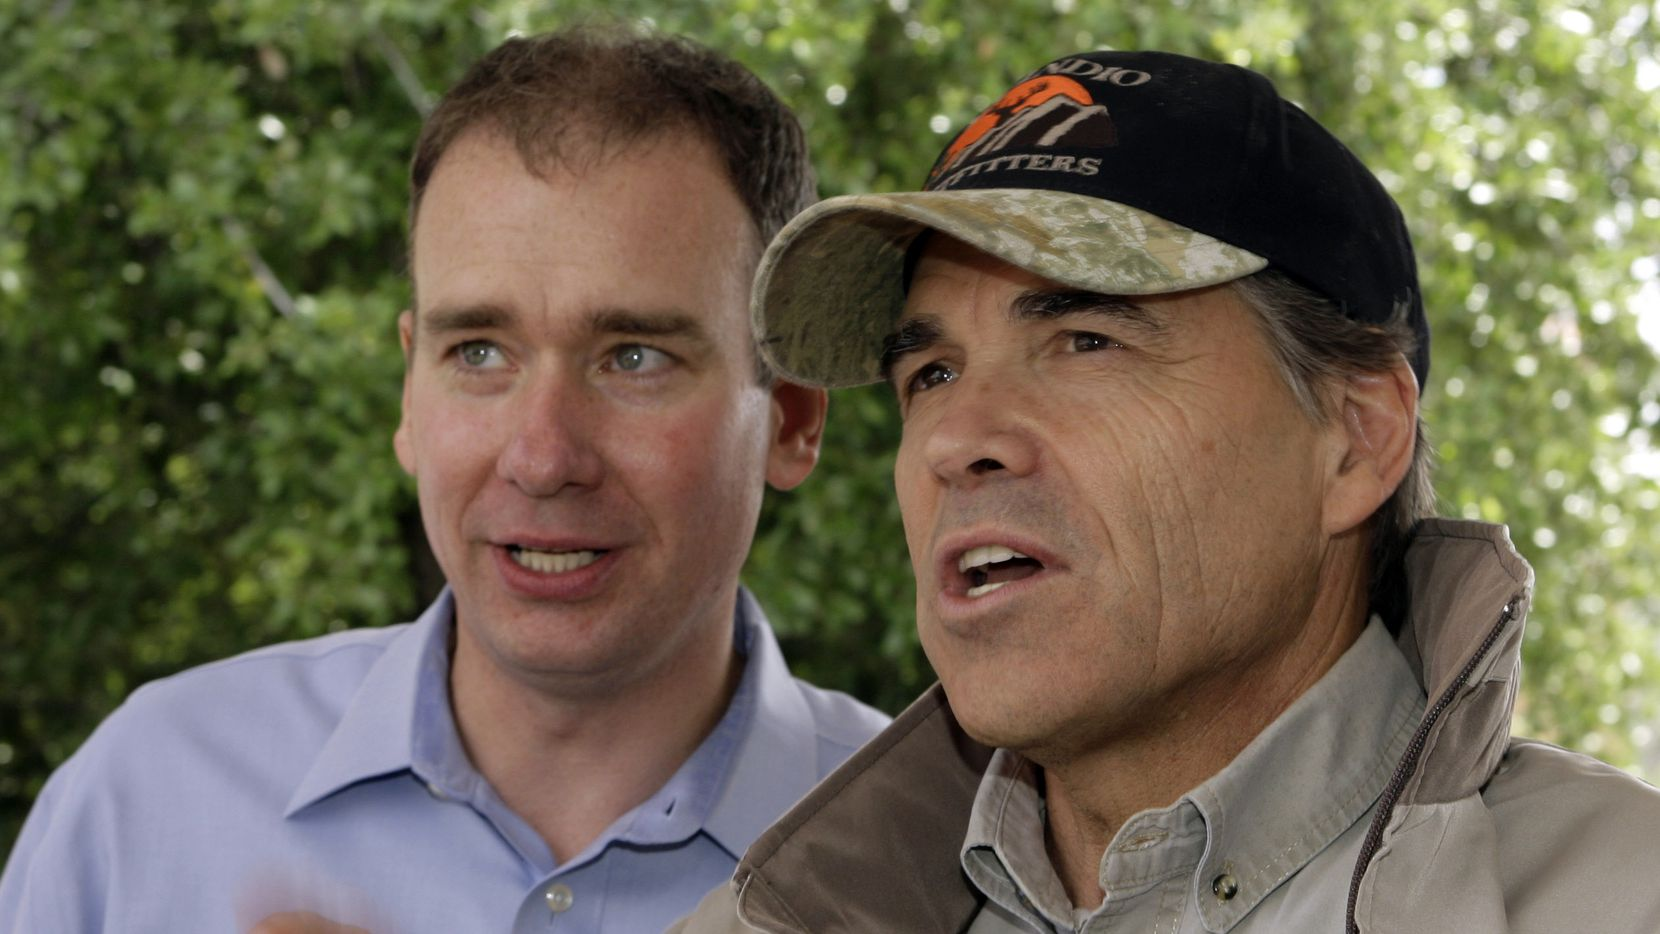 """Michael Quinn Sullivan (left) spoke to then-Gov. Rick Perry before a """"Don't Mess With Texas"""" tea party rally in Austin in 2009. Read further in our Washington points for some news about Perry, too. (Harry Cabluck/Associated Press)"""